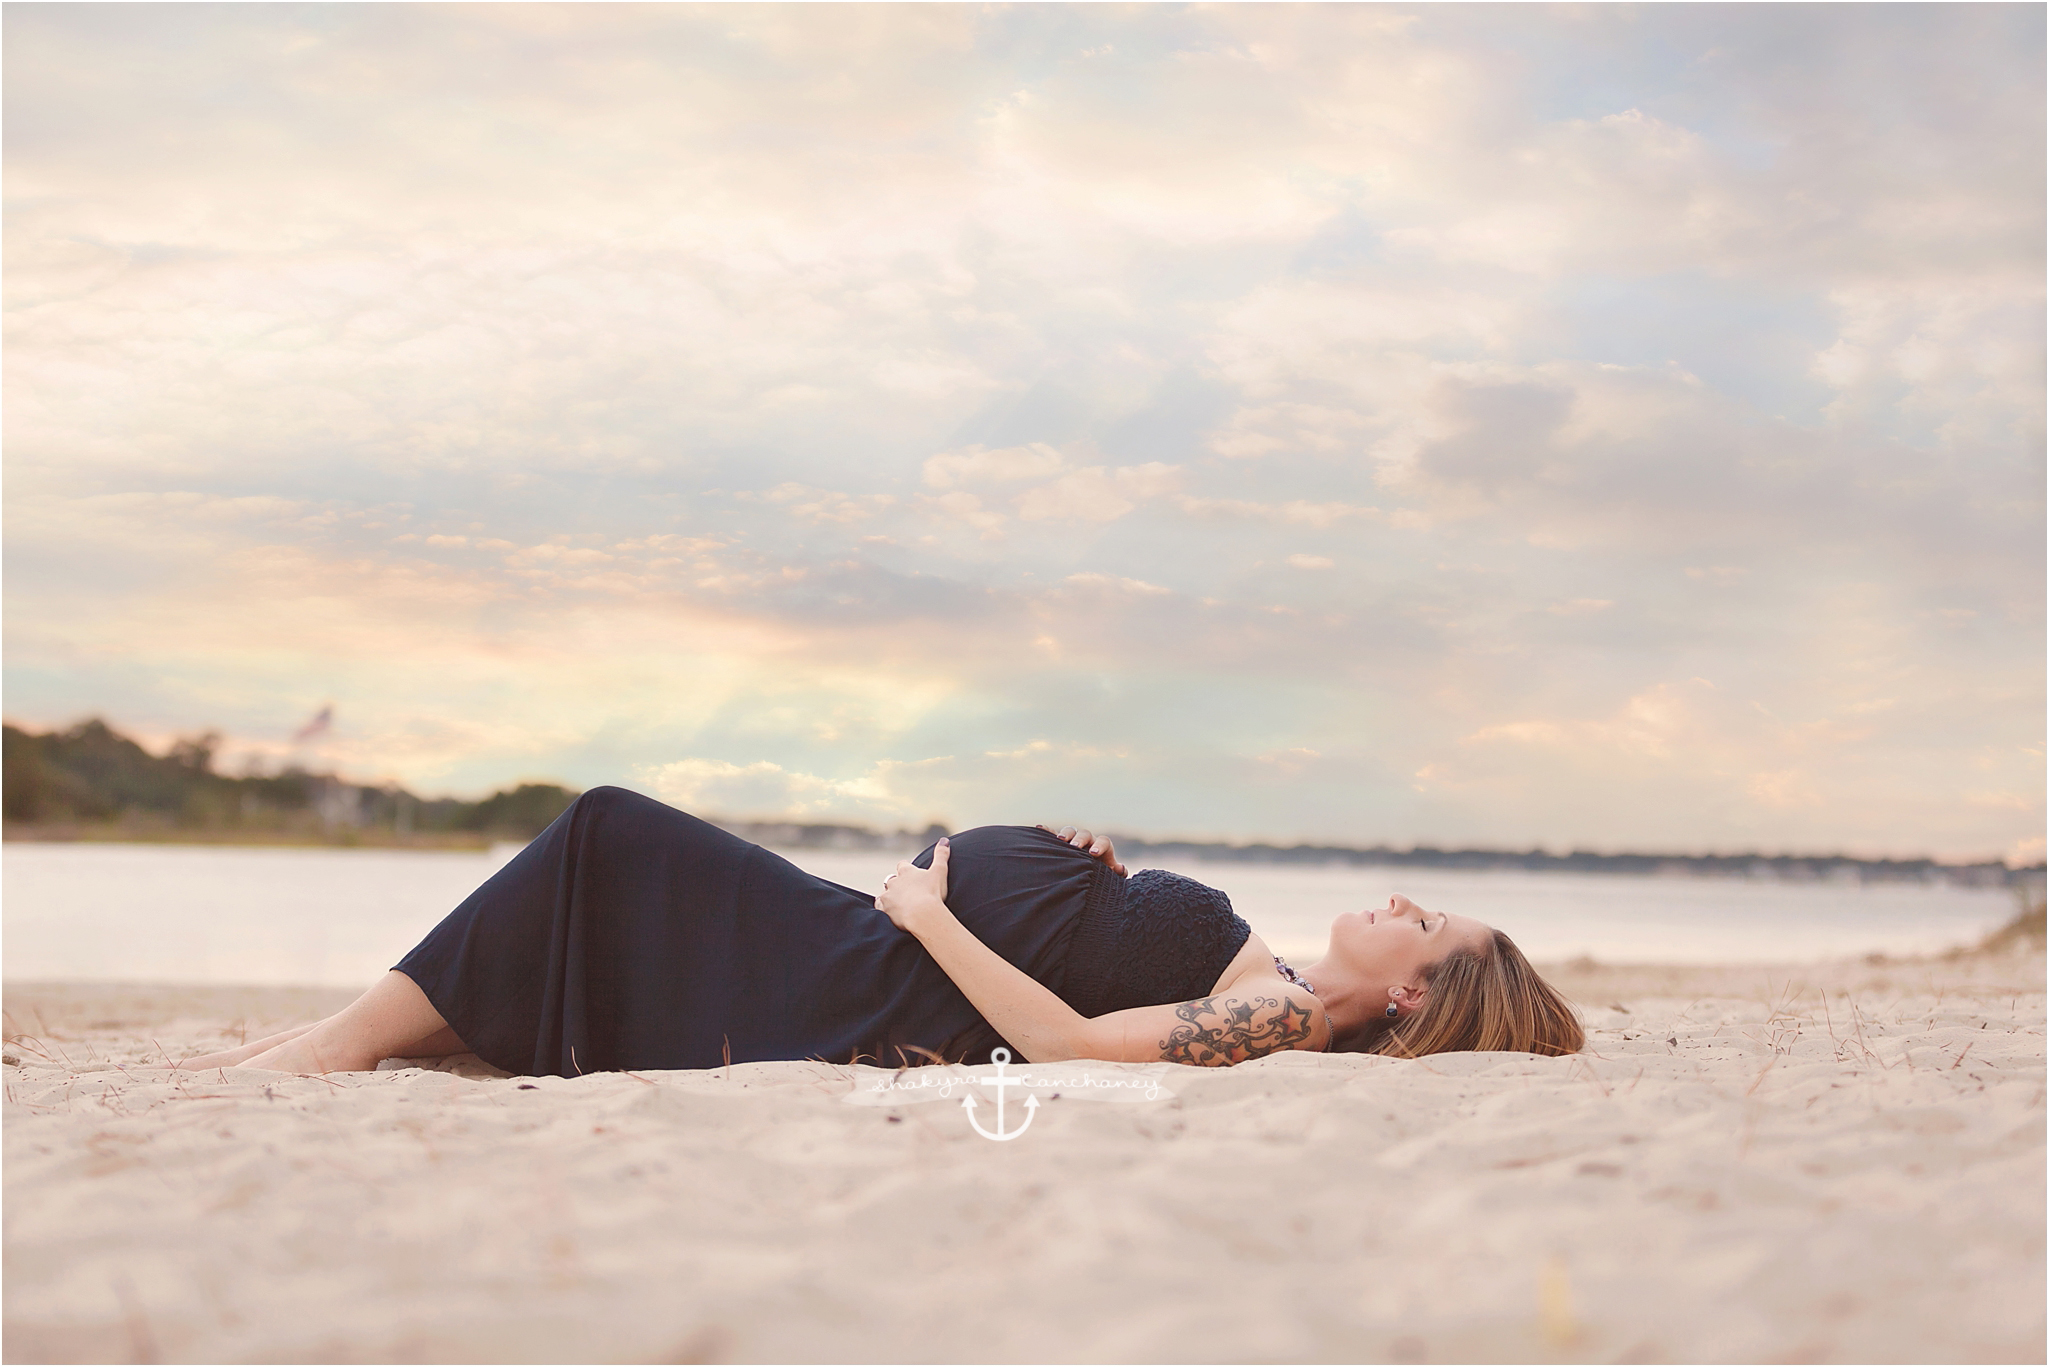 Maternity photography Hampton Roads Virginia Beach Photographer www.shakyracanchaney.com